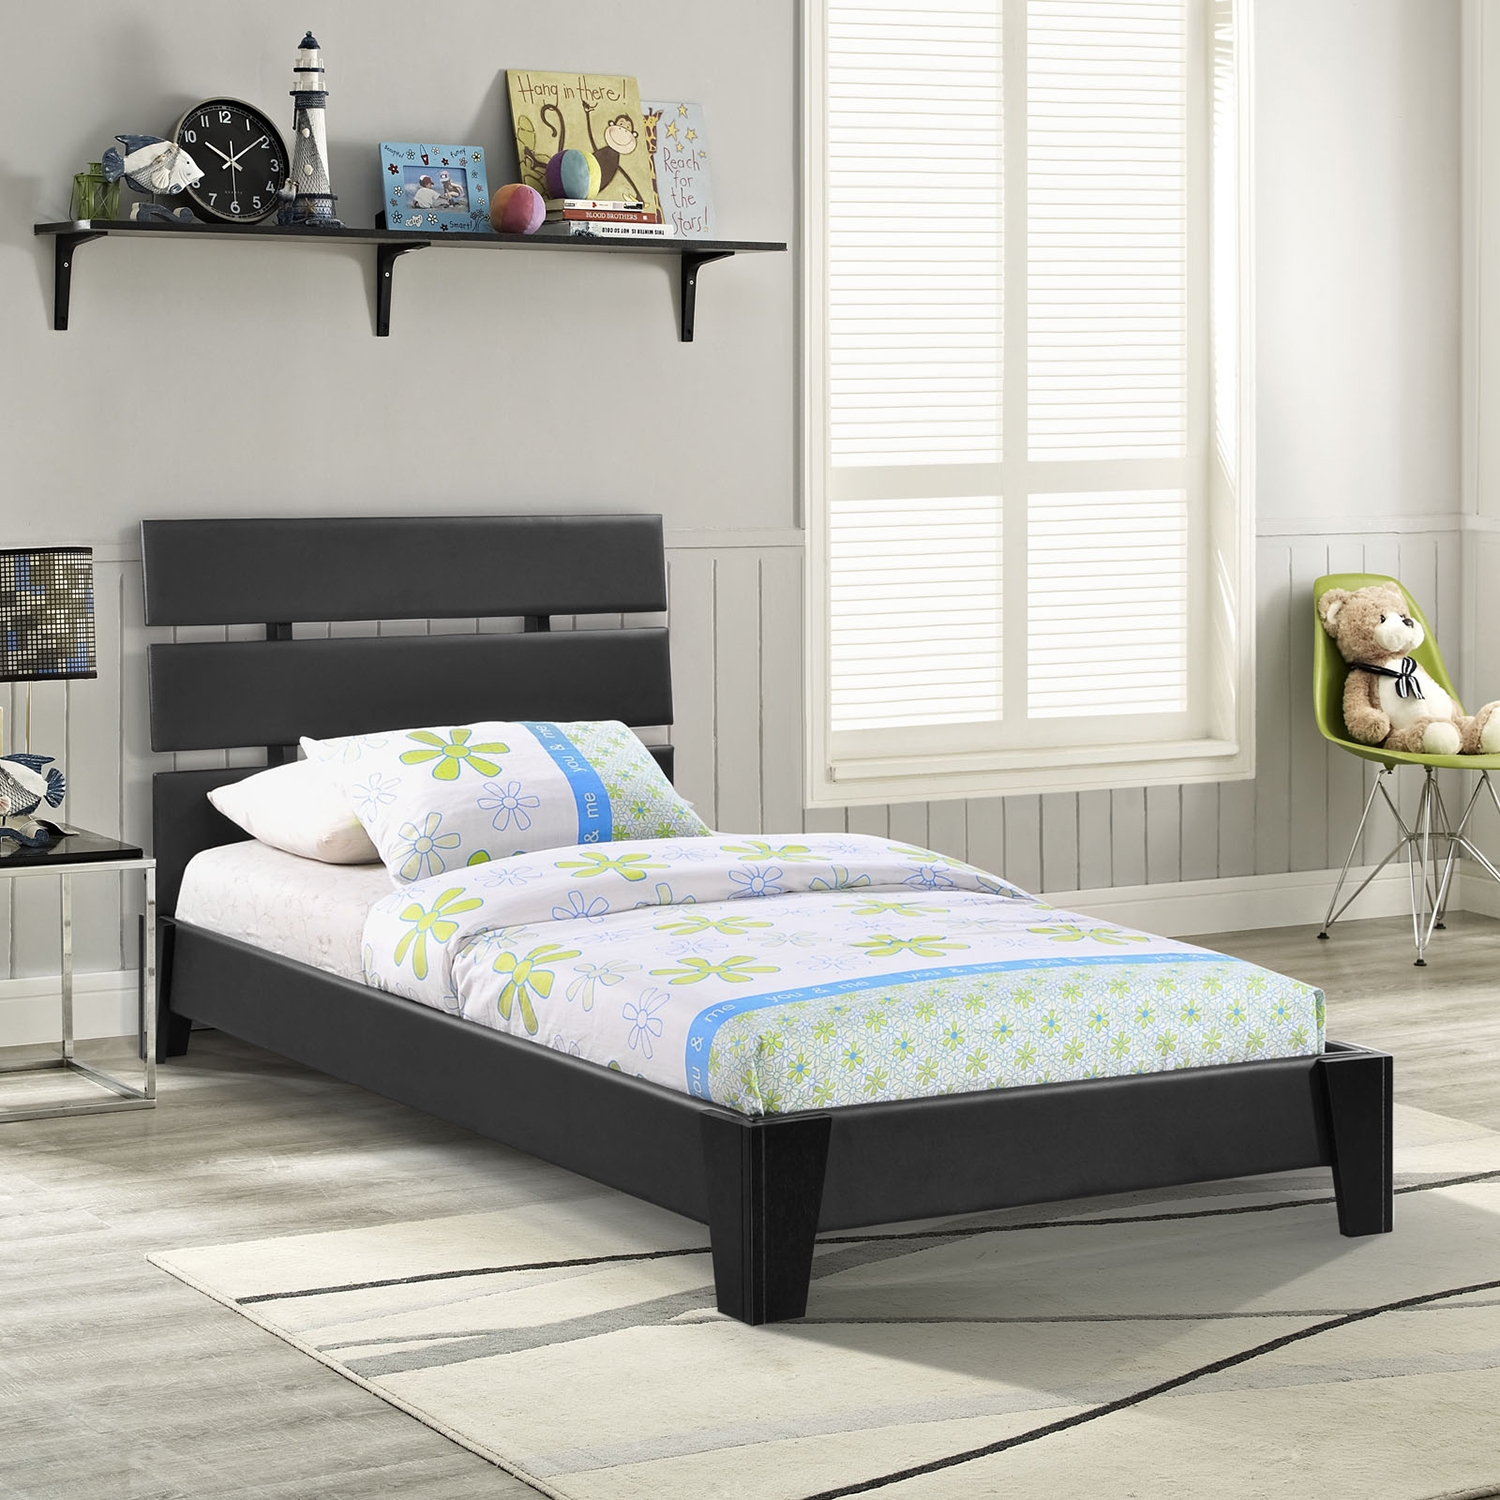 Zoe Twin Leatherette Bed - Platform, Black - EEI-MOD-5186-BLK